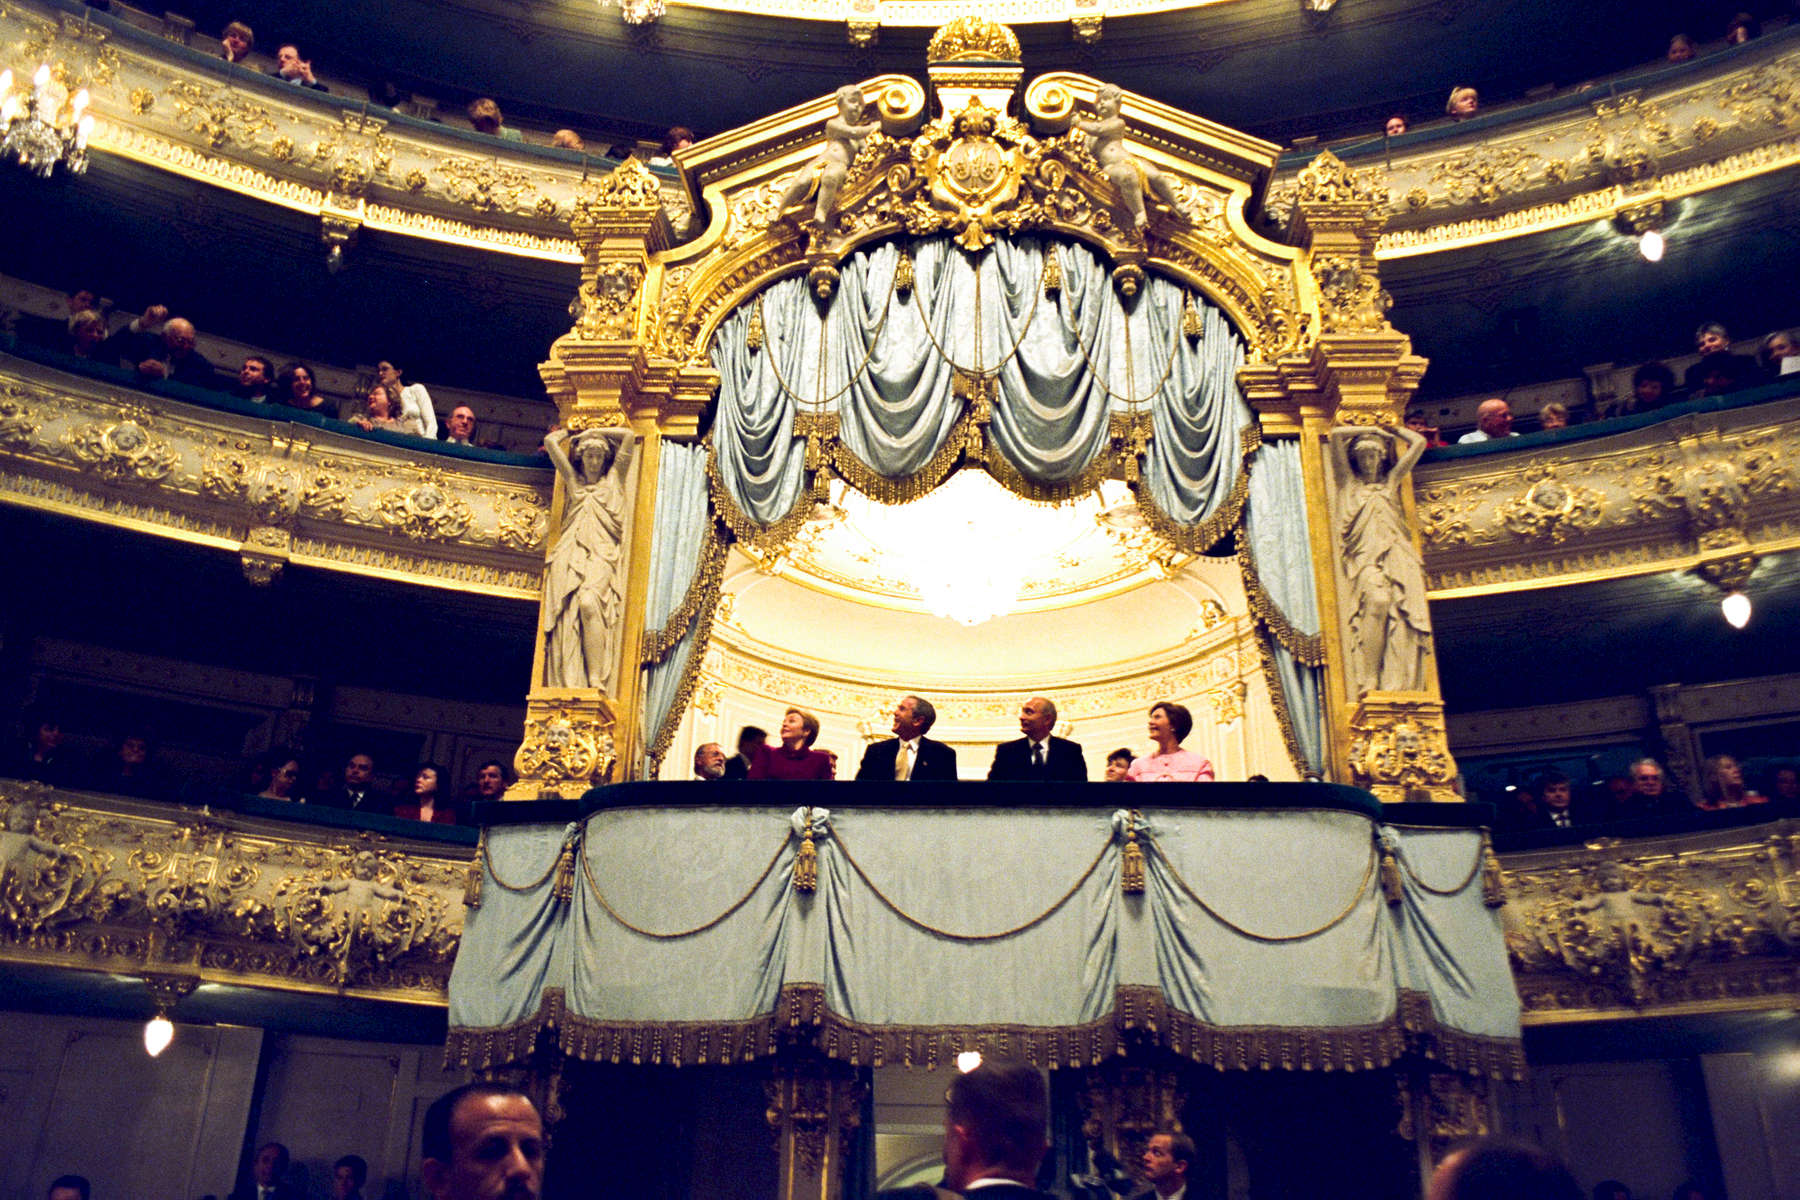 PRESIDENT BUSH AND LAURA BUSH ATTEND A PERFORMANCE AT THE MARIINSKIY THEATER IN ST. PETERSBURG, RUSSIA  WITH PRESIDENT VLADIMIR PUTIN AND HIS WIFE, LYUDMILA. Jumbo, web photo. Used in Bush Family Scrapbook May 1-May 28, 2002